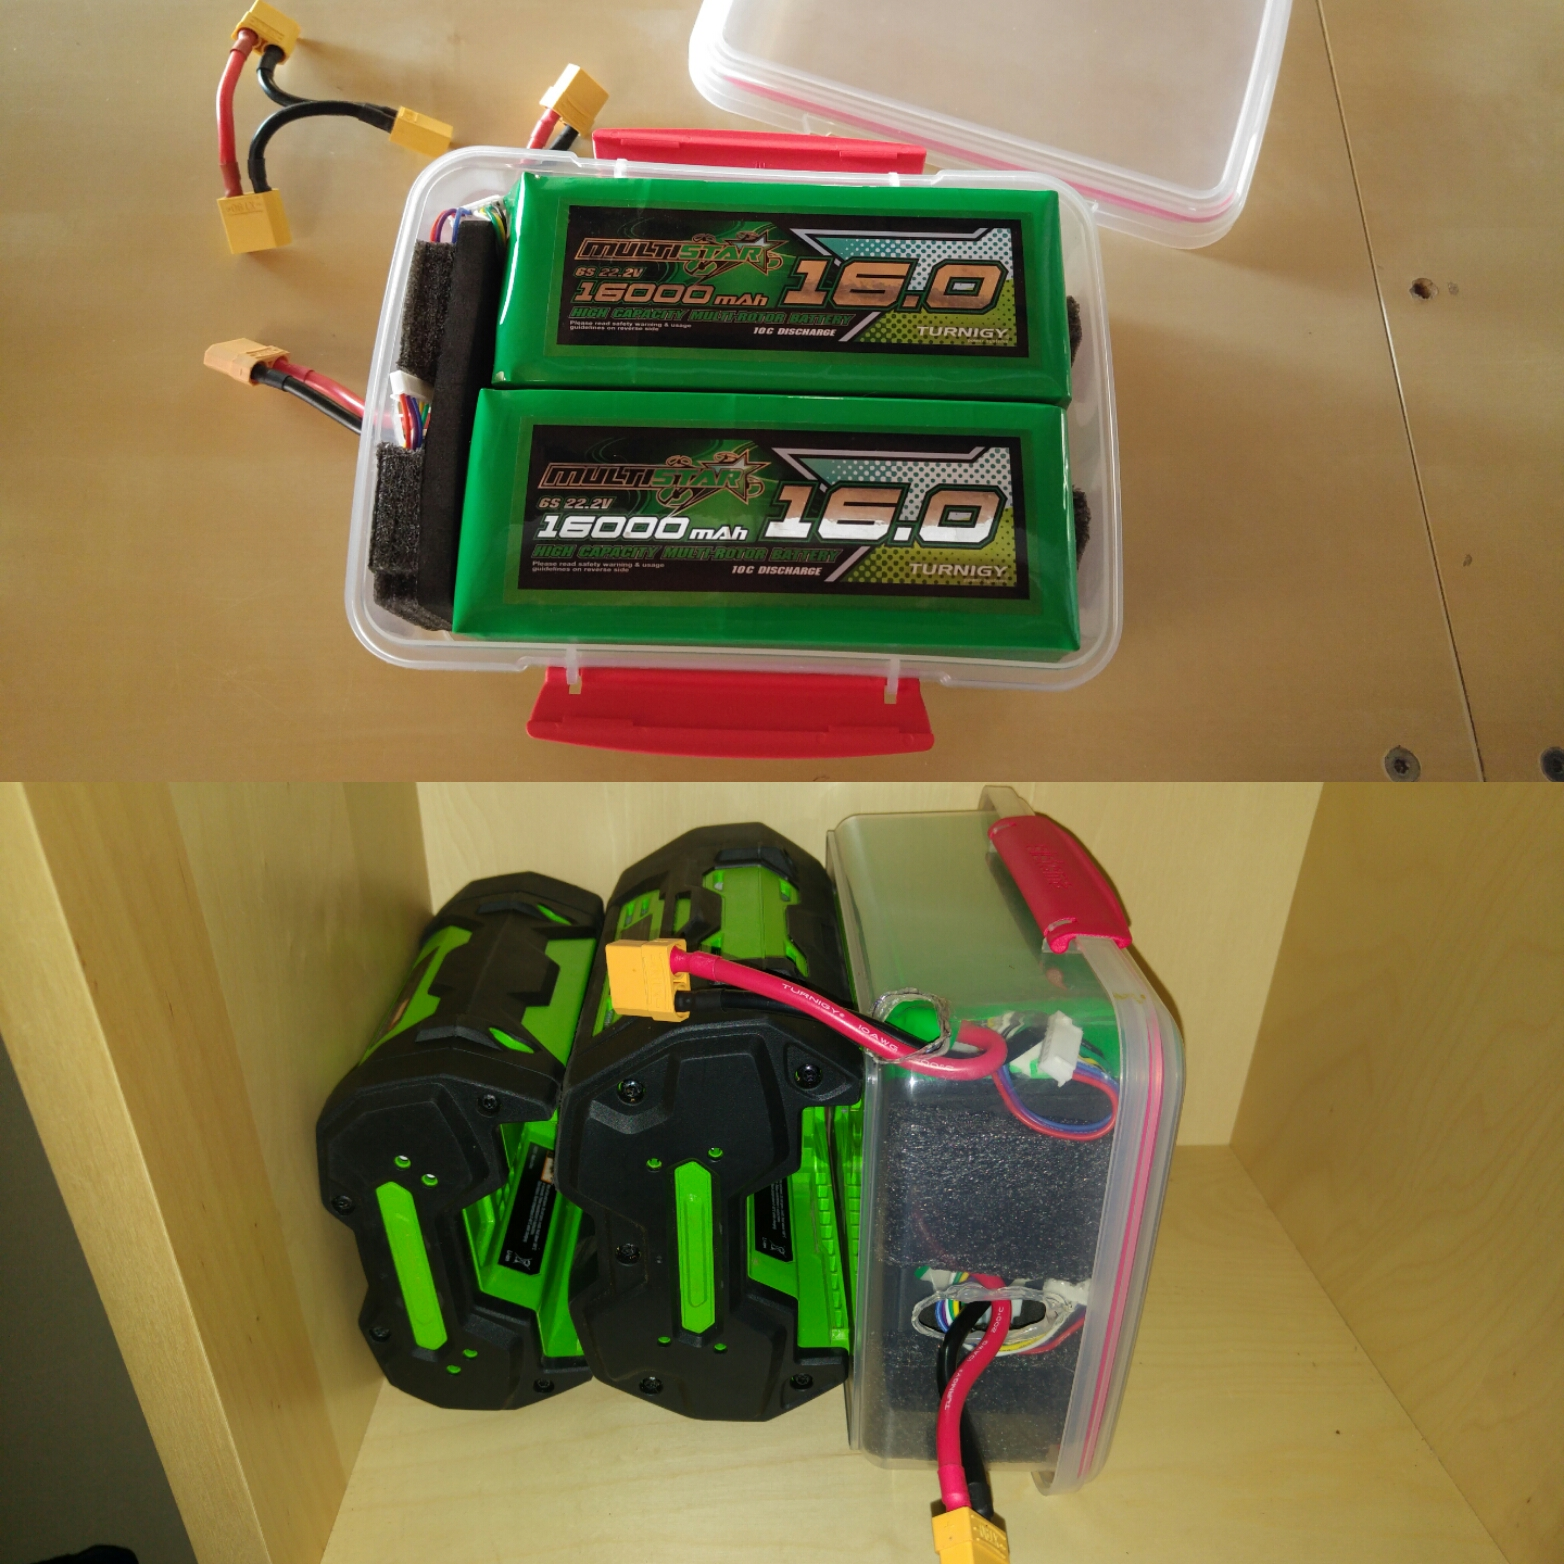 Use Your Cordless Power Tool Batteries To Ebike What Wiring Diagram Ego Heres The 2ah 4ah Hk 16ah Lunchbox Bulk Comparison